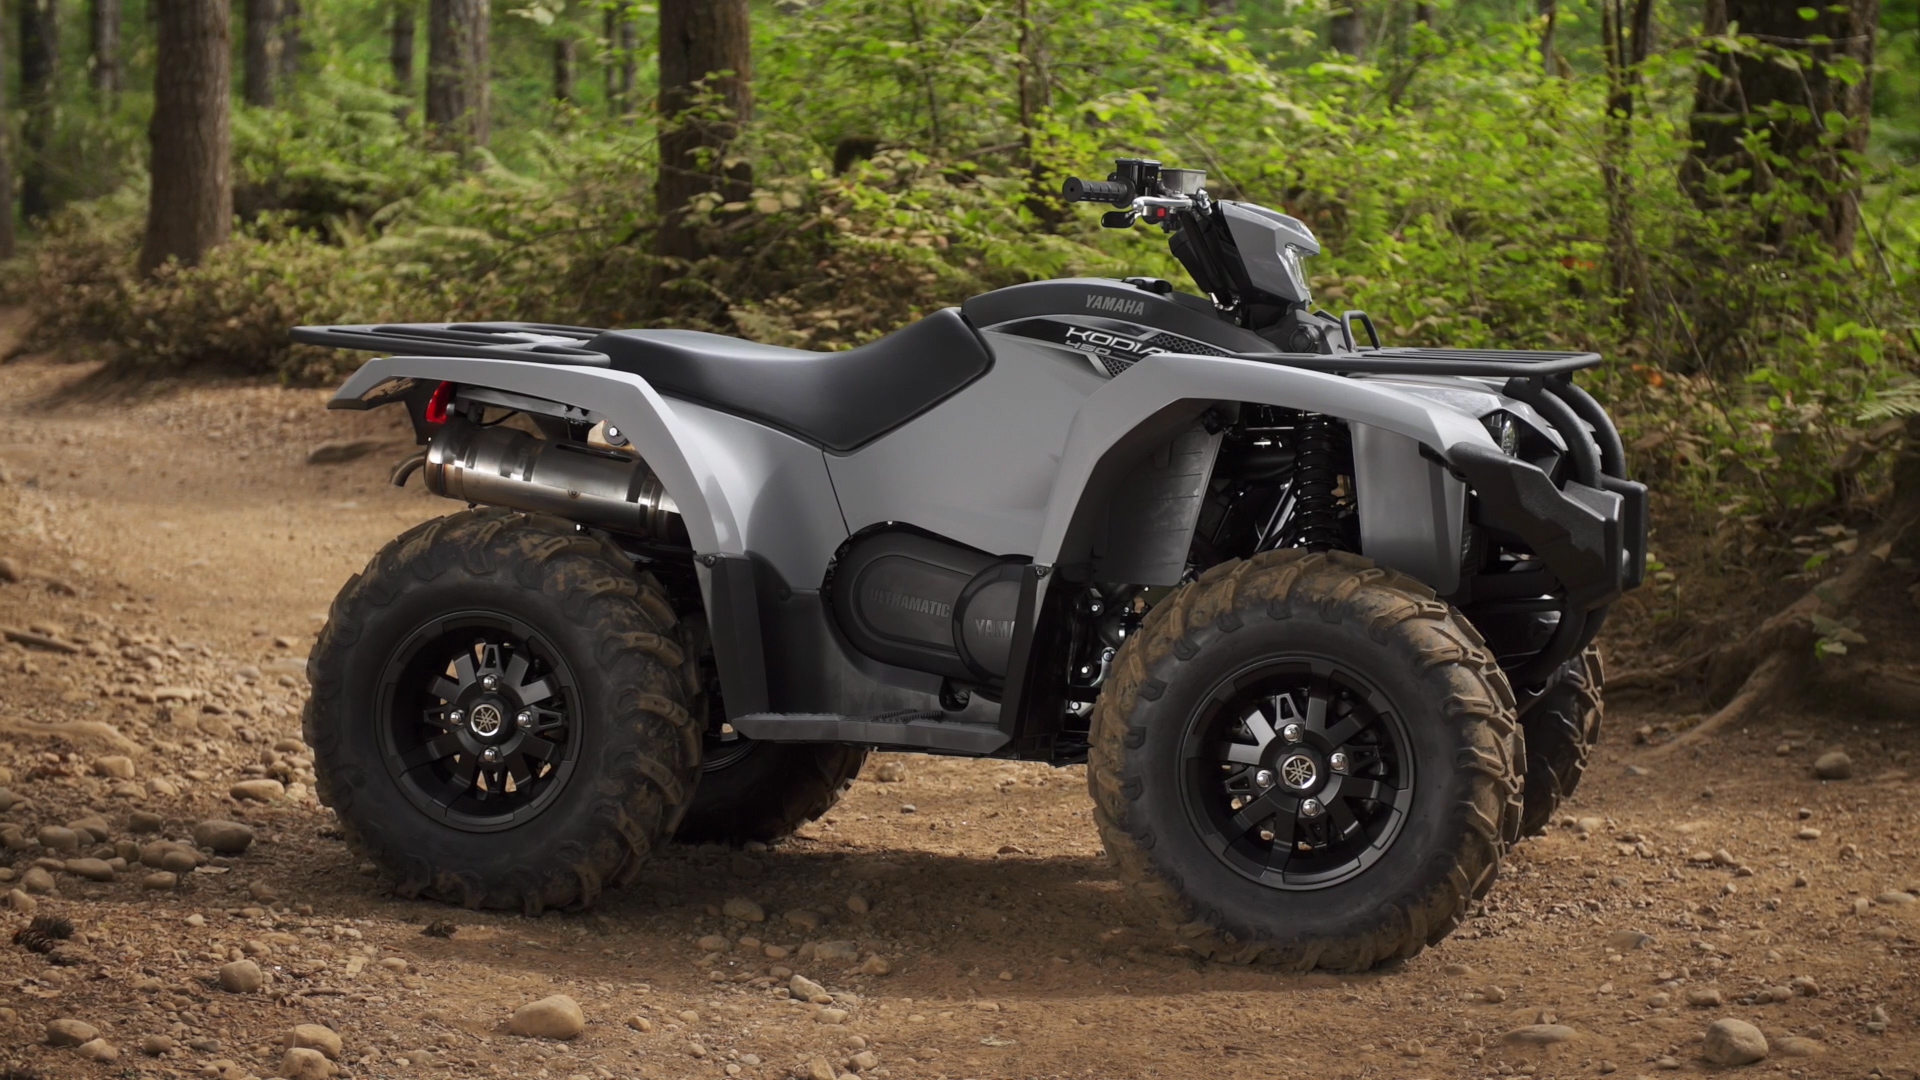 2018 yamaha kodiak 450 test review with video for Yamaha kodiak 700 top speed